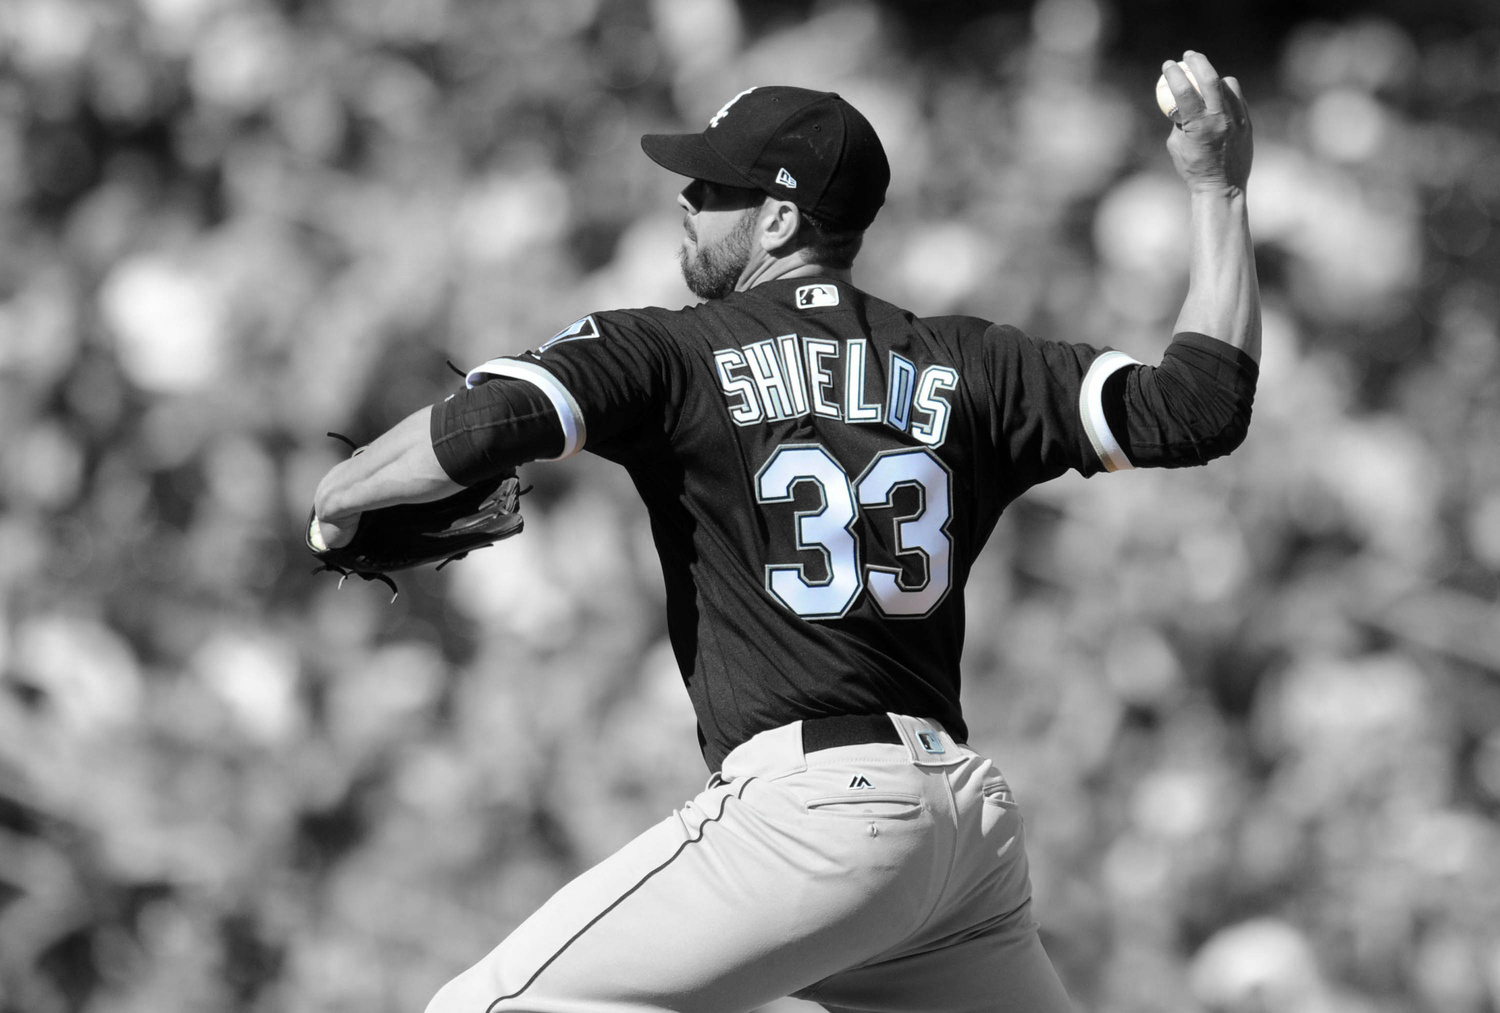 James Shields - Chicago White Sox